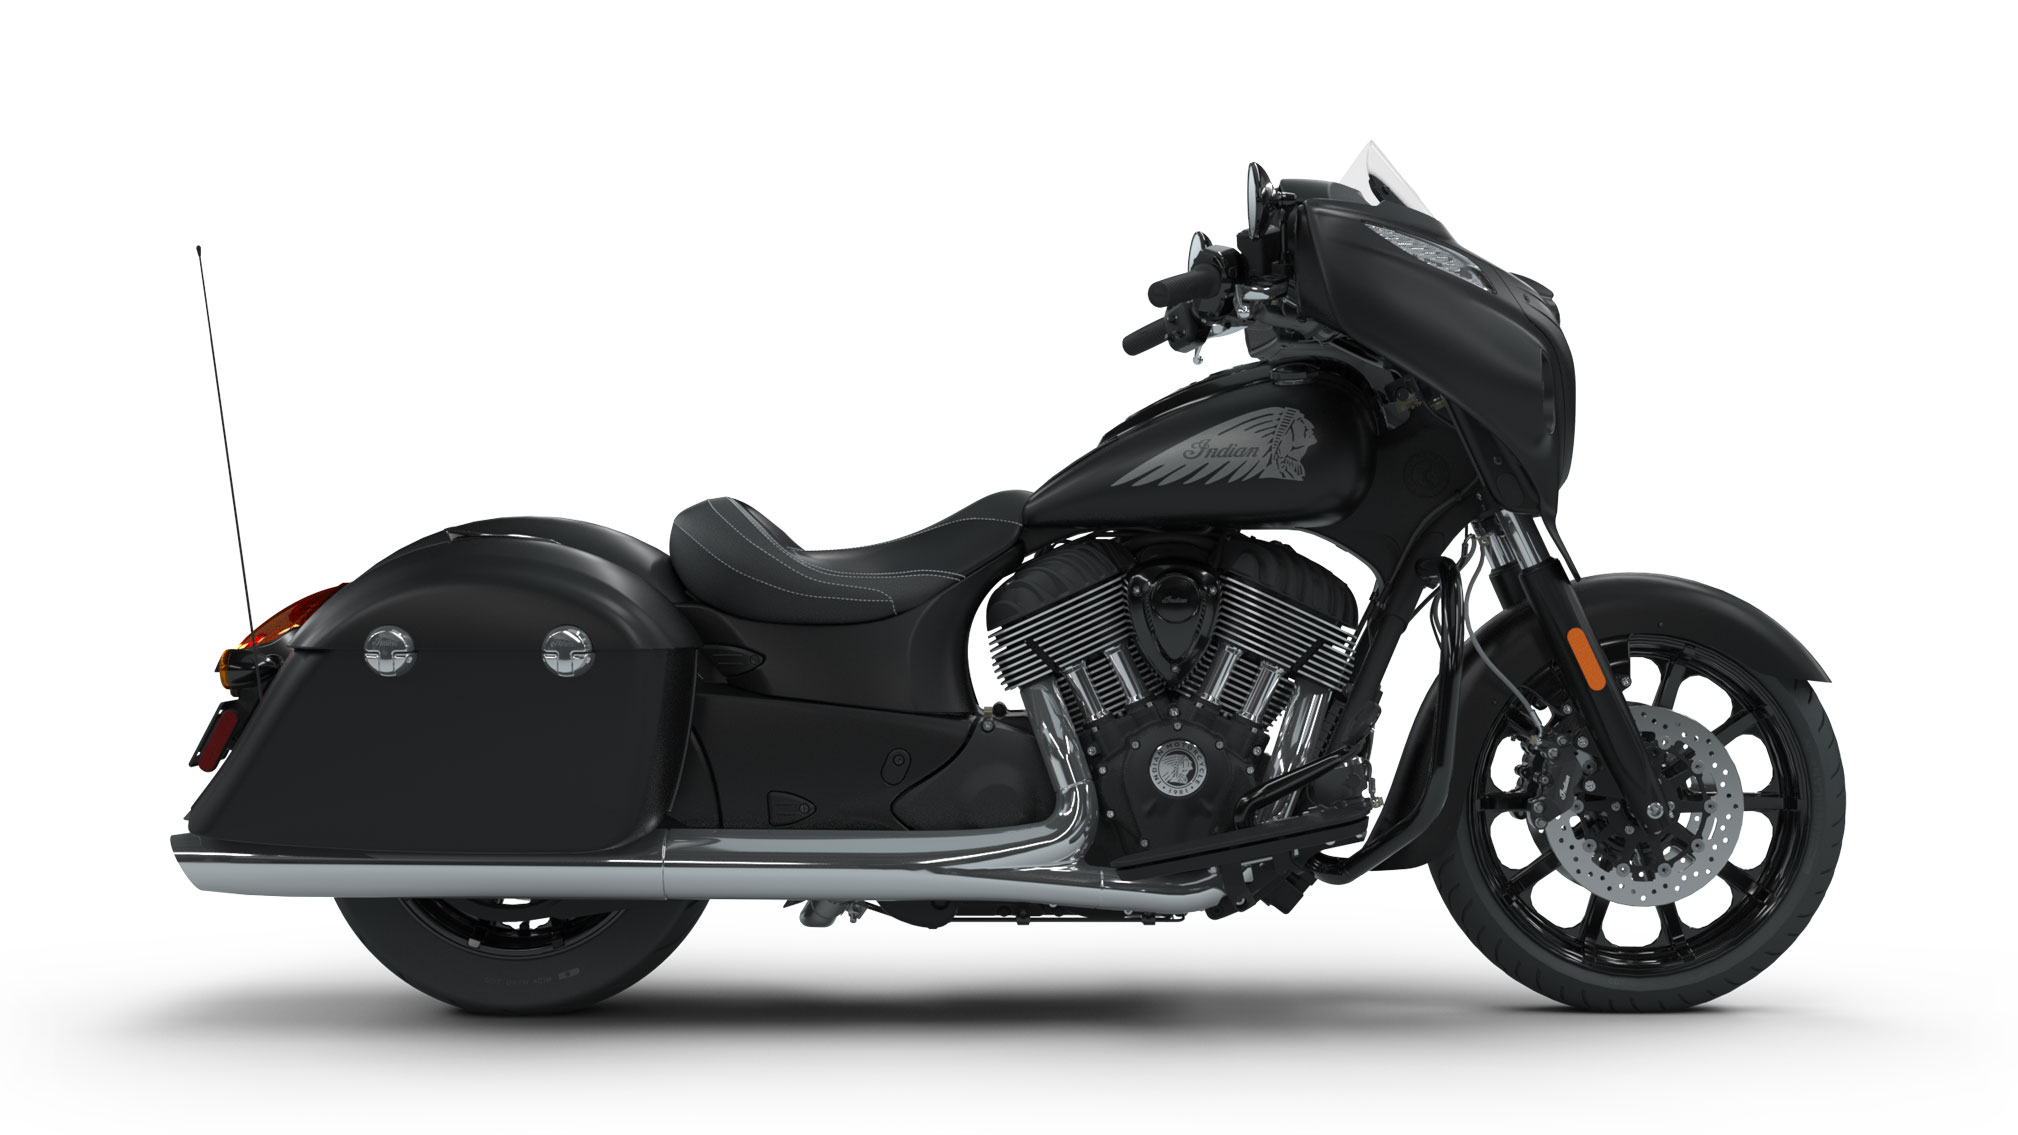 2018 indian chieftain dark horse review total motorcycle. Black Bedroom Furniture Sets. Home Design Ideas